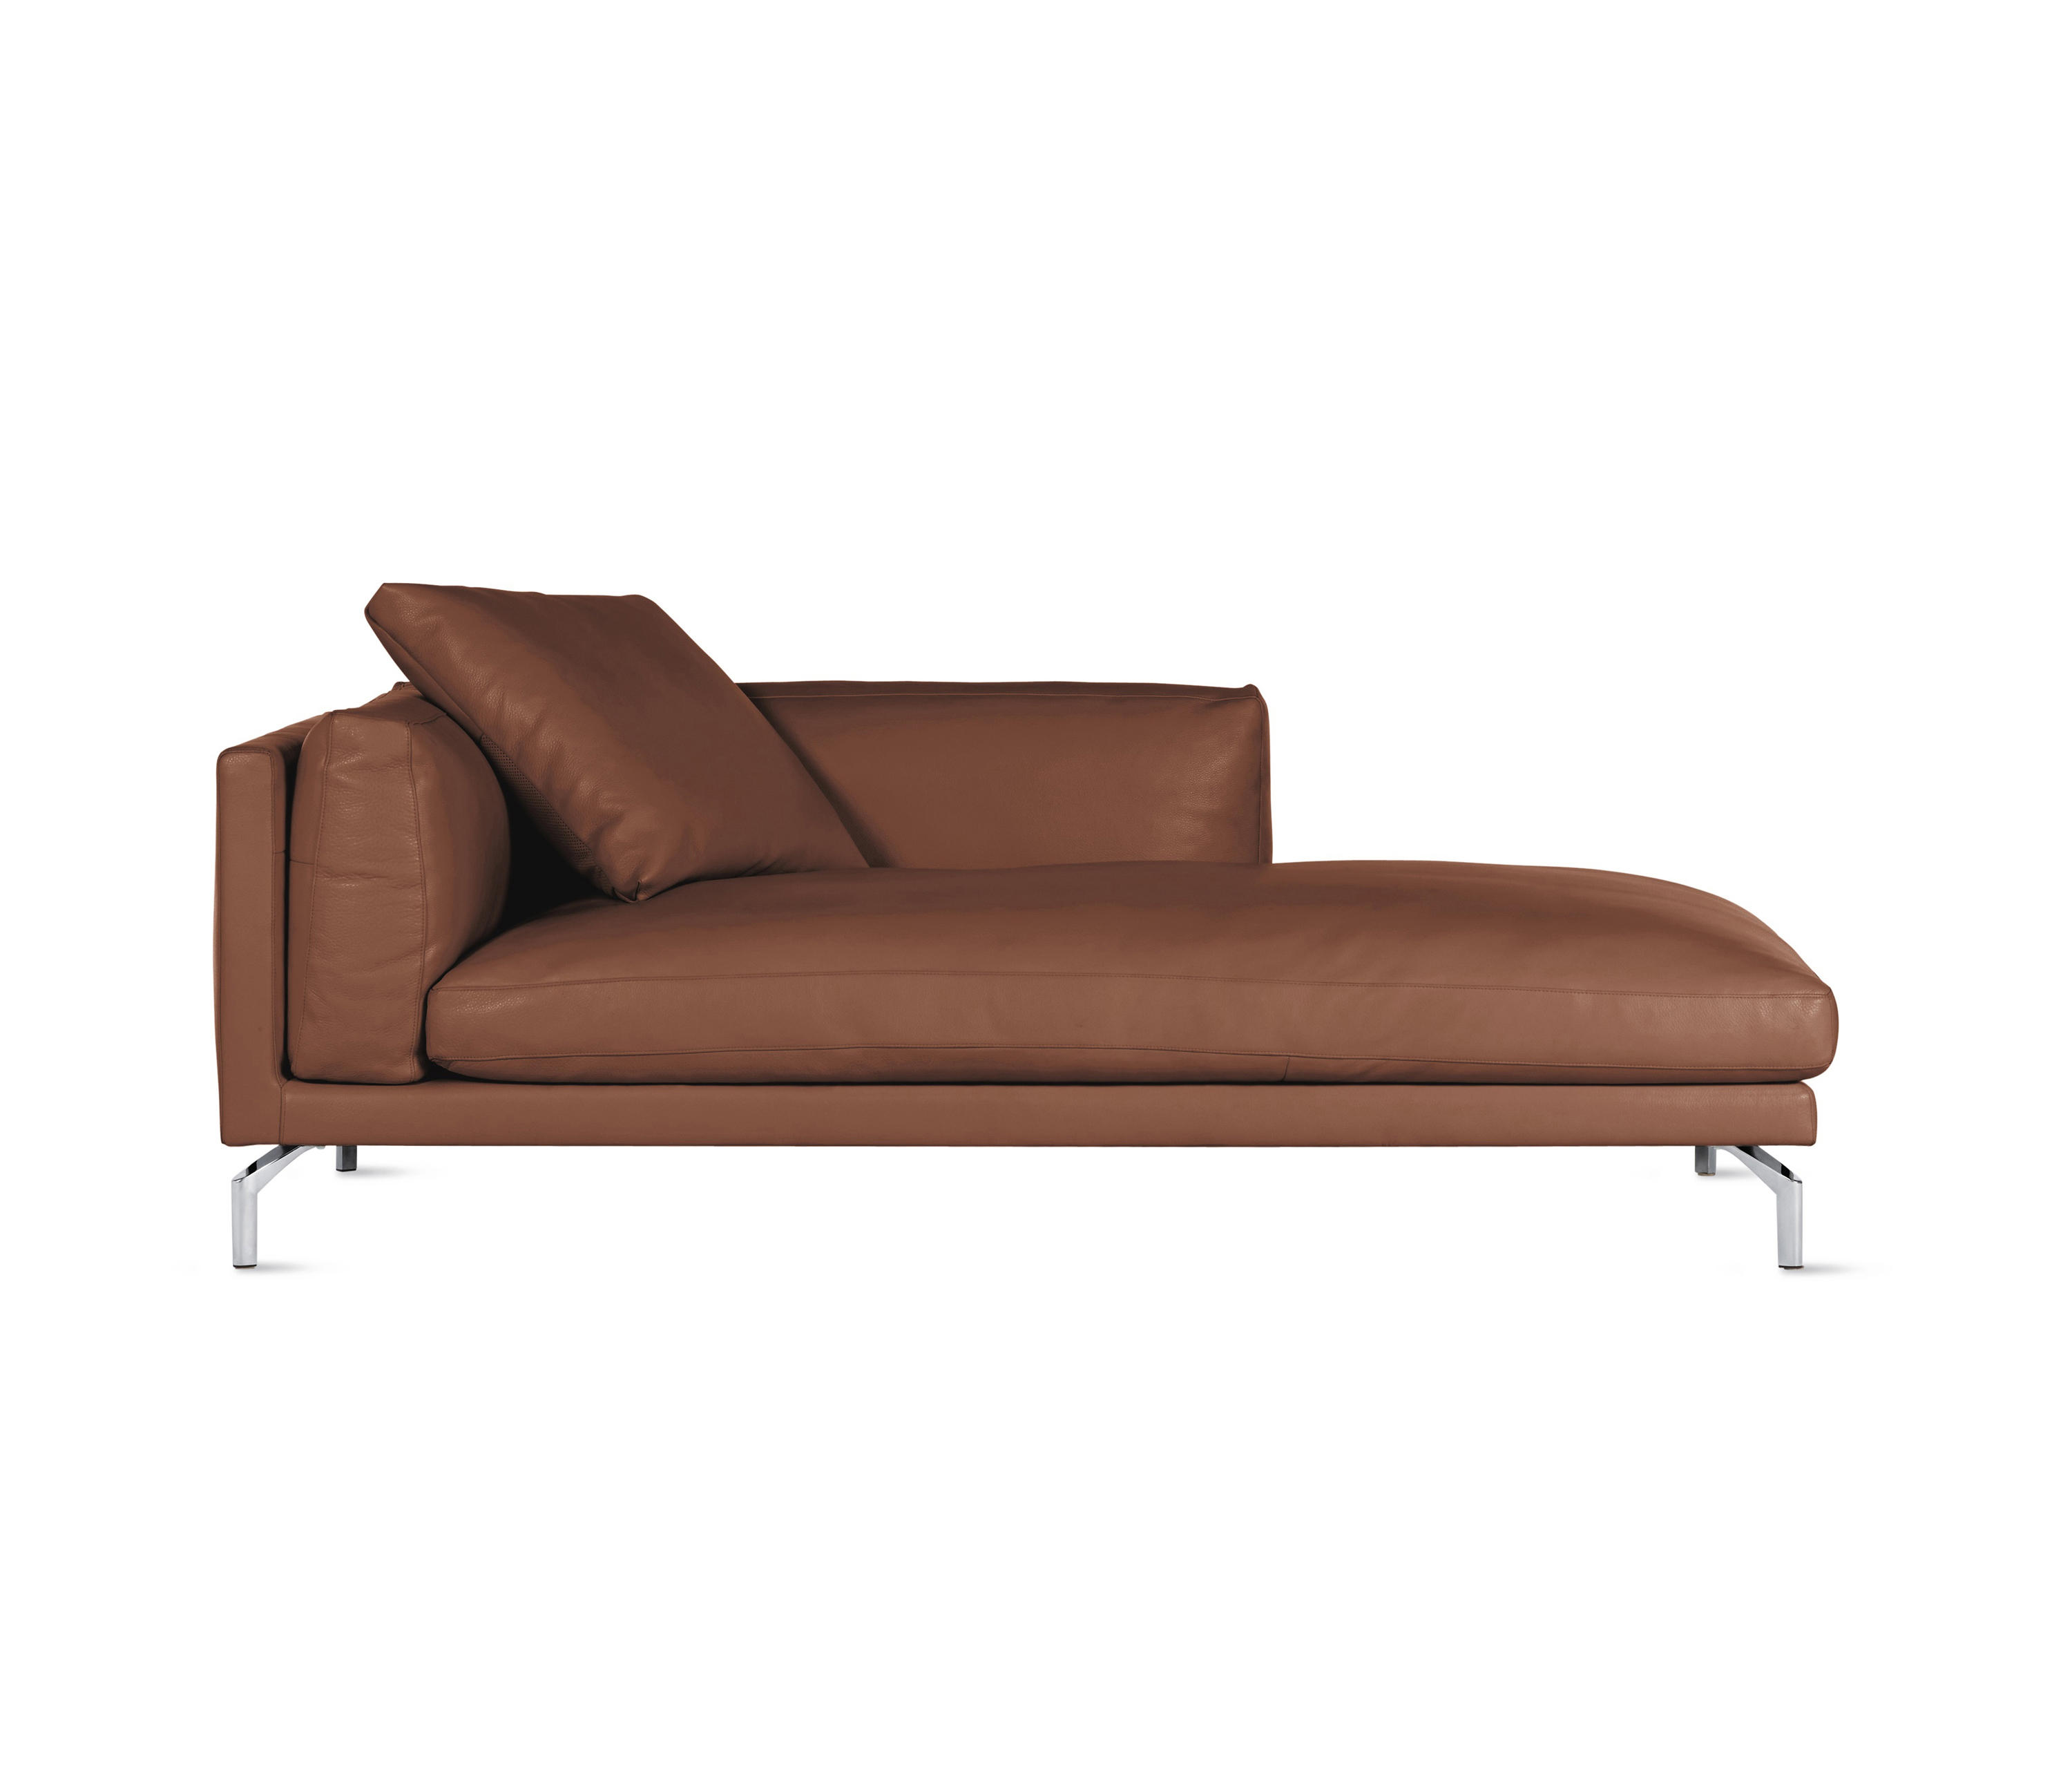 Design Chaise Como Chaise In Leather Right Recamieres From Design